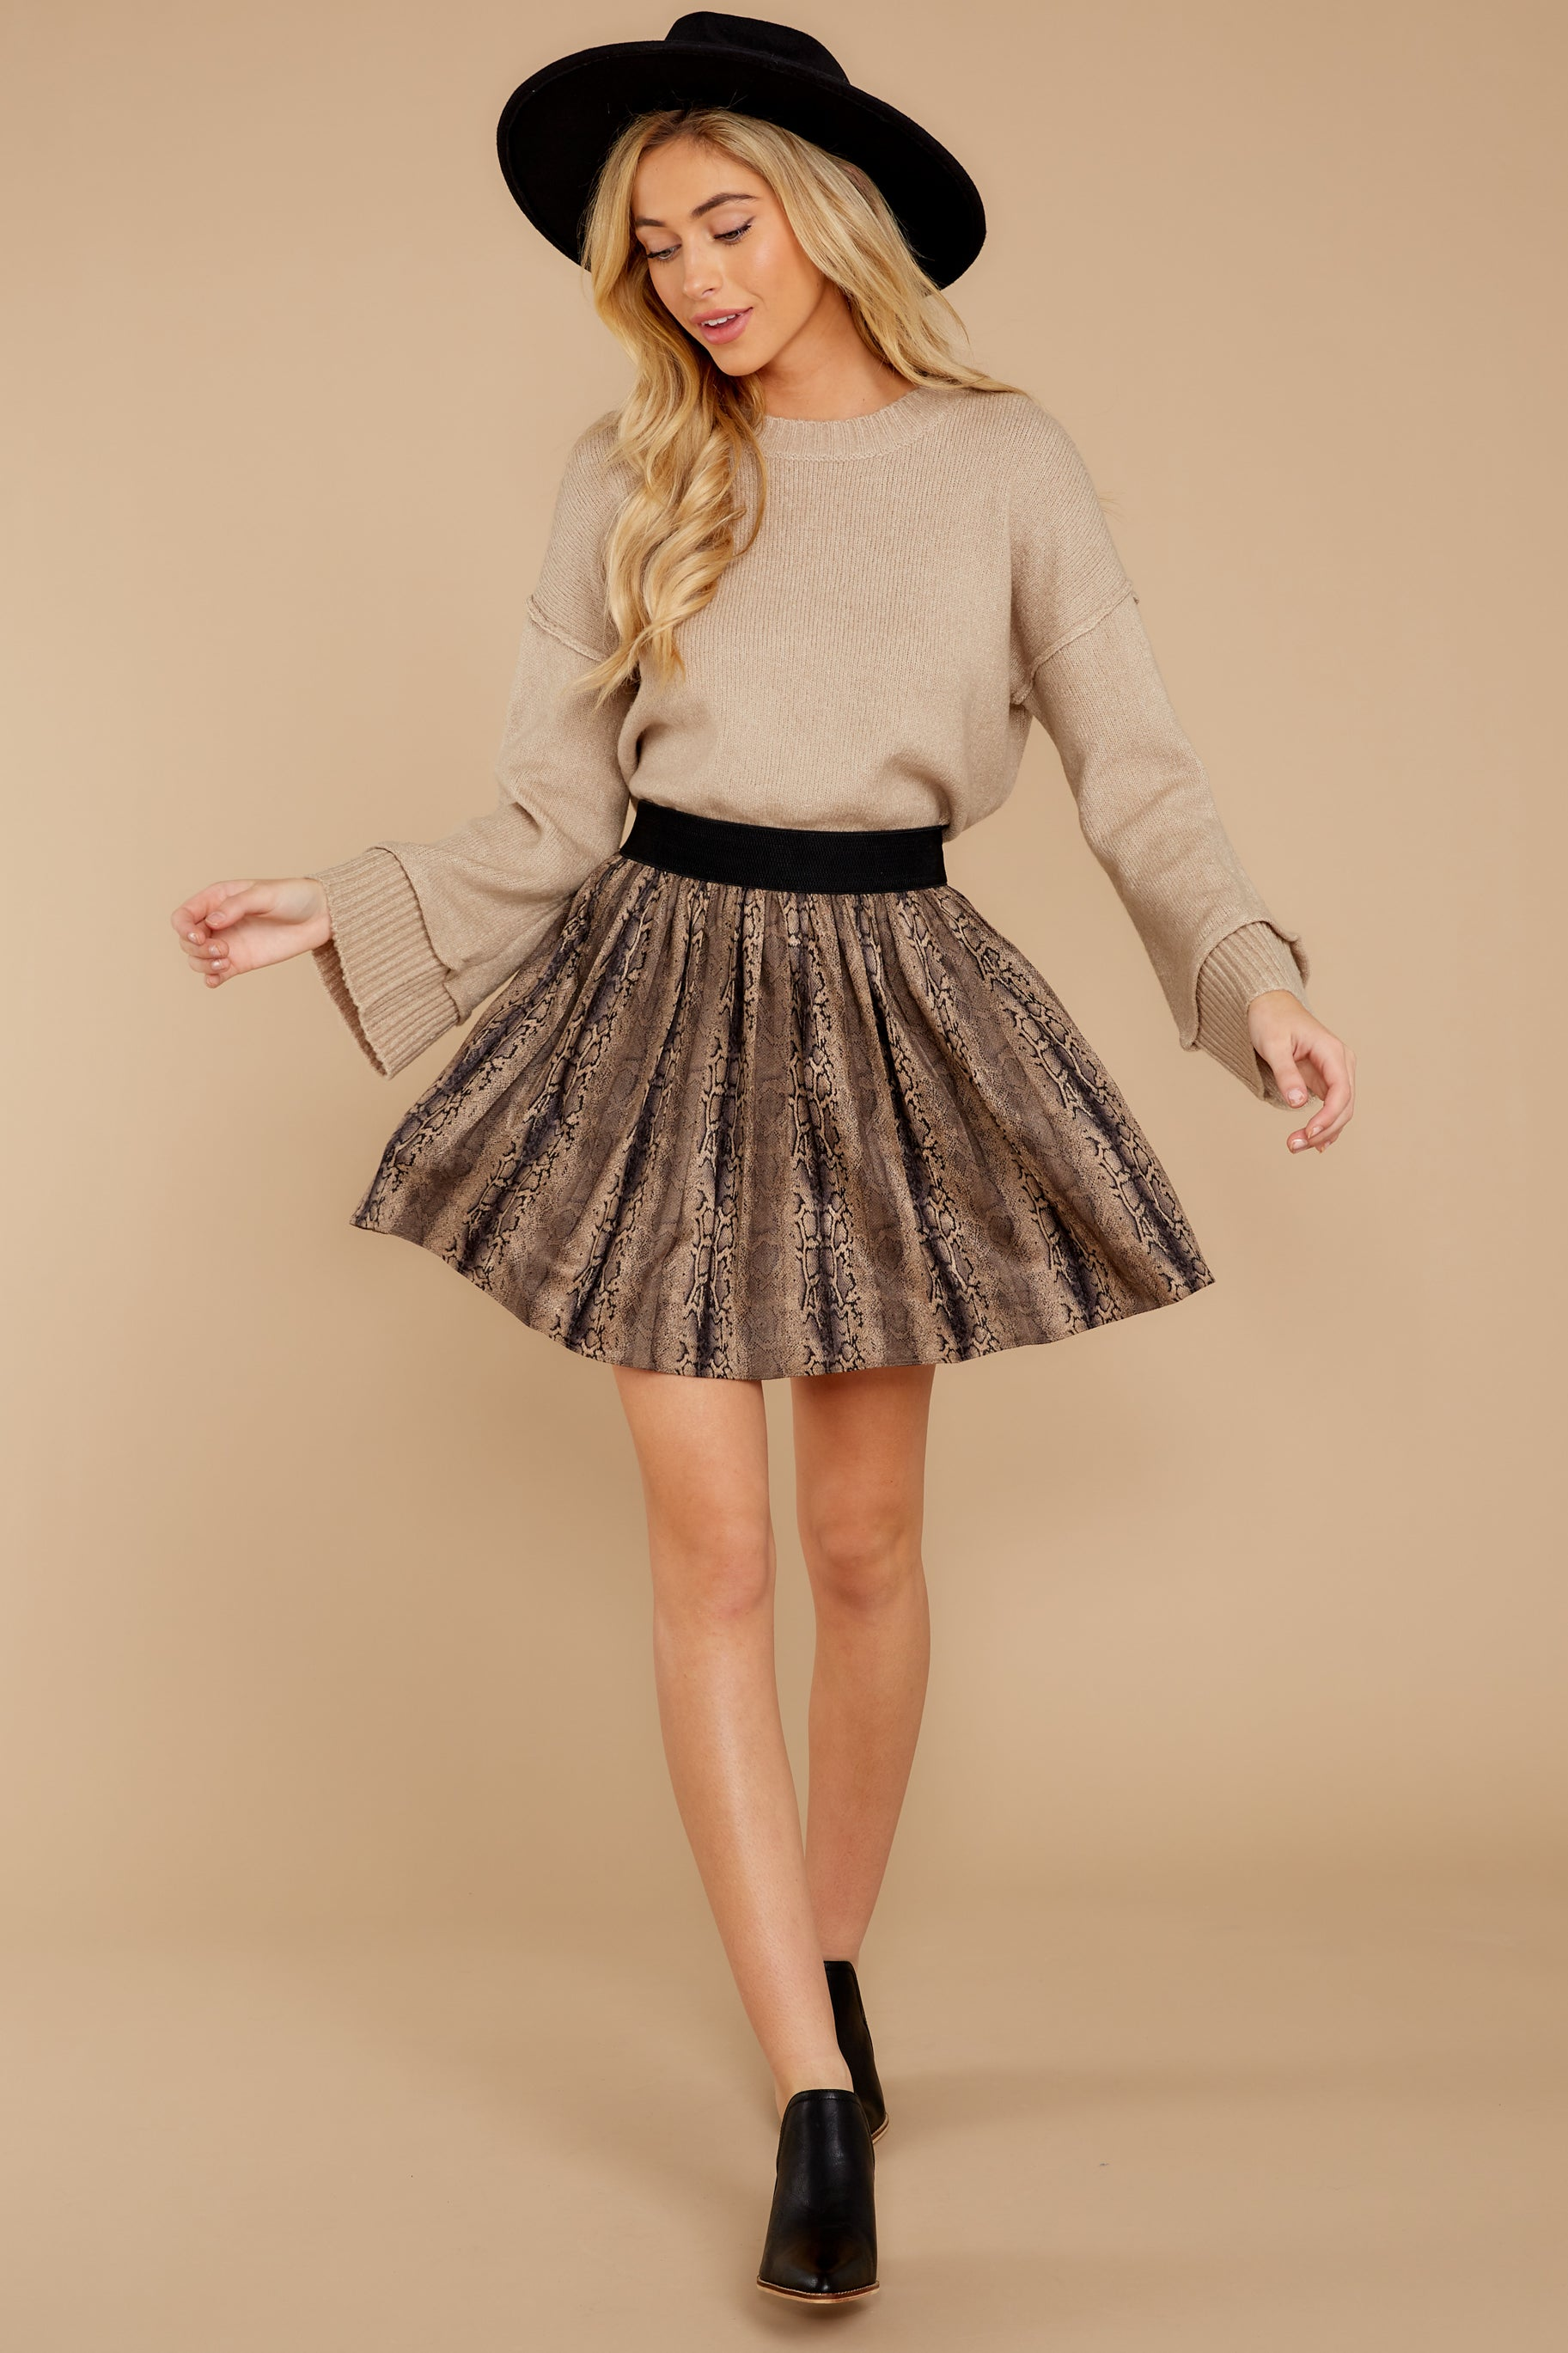 6 Woman About Town Warm Taupe Sweater at reddressboutique.com